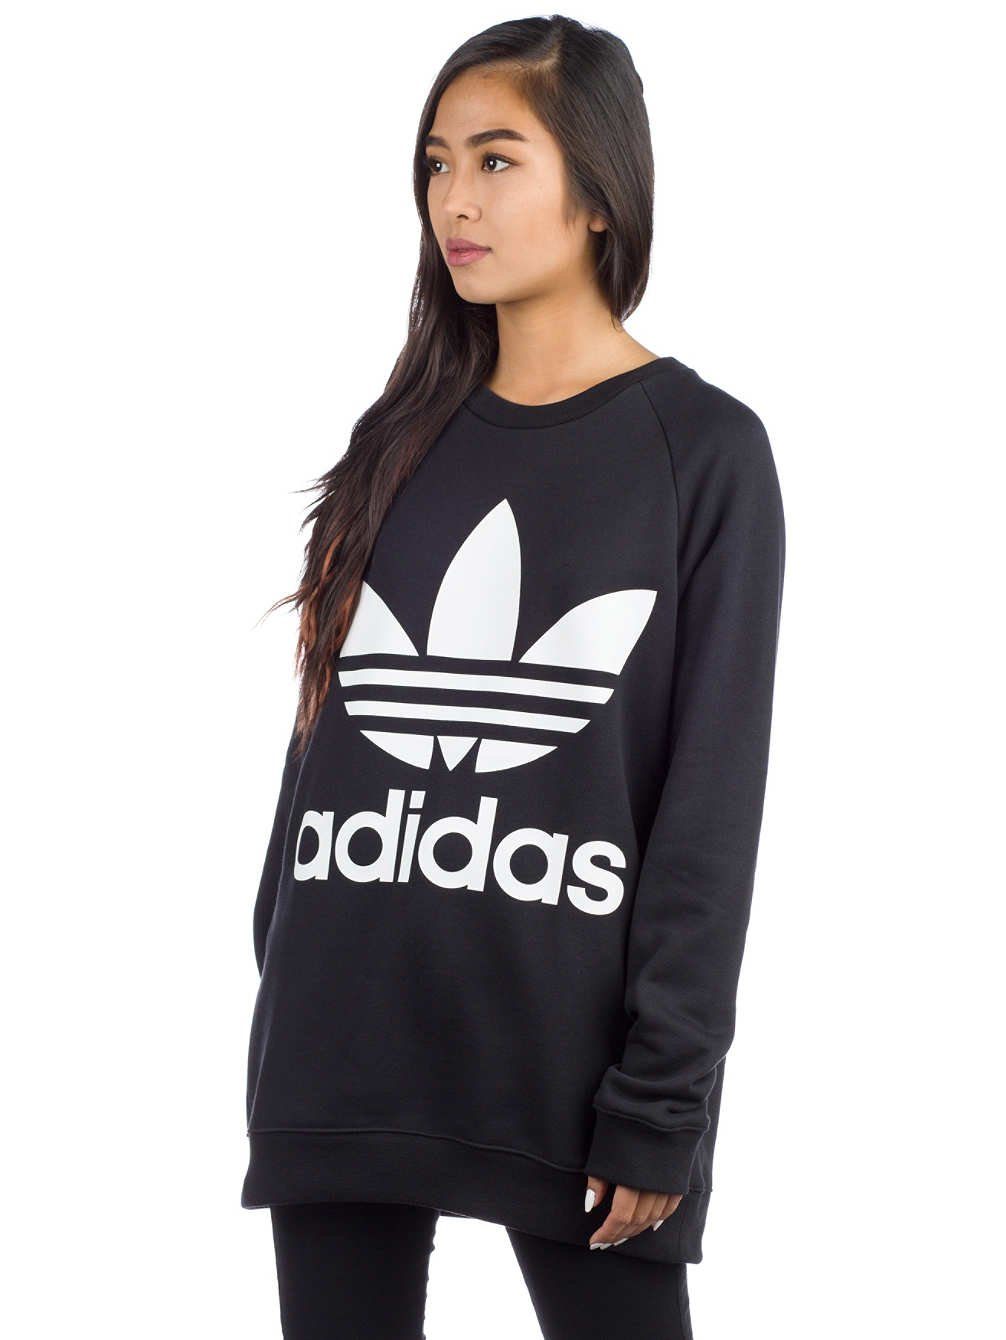 adidas Women's Oversized Sweatshirt